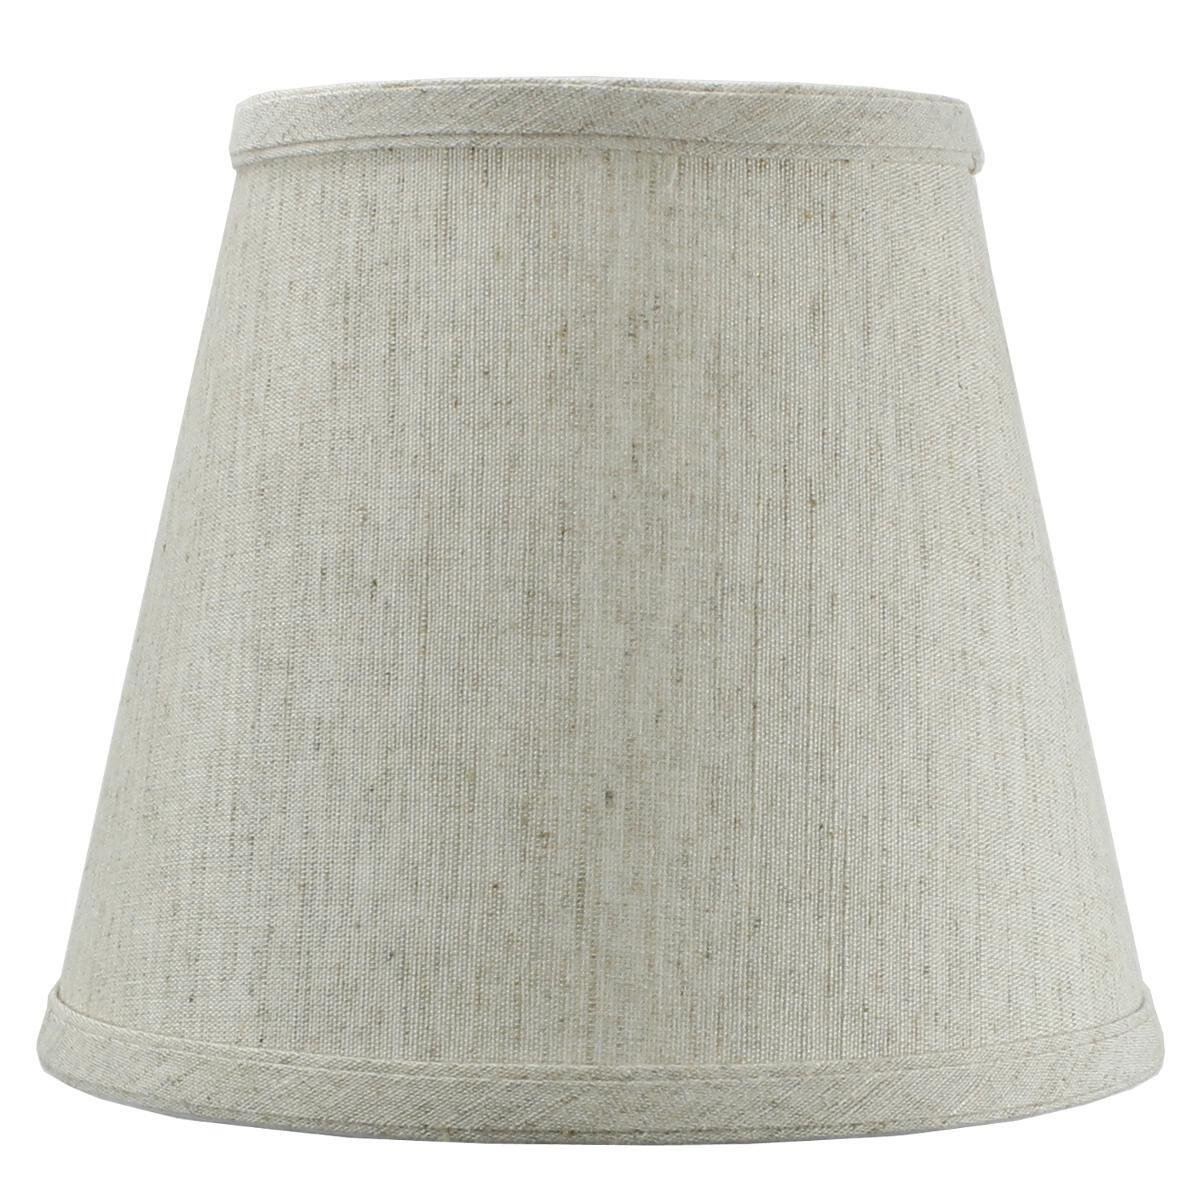 Textured Oatmeal Hard Back Lampshade with clip-on fitter By Home Concept - Perfect for small table lamps, desk lamps, and accent lights -Small, Off-White